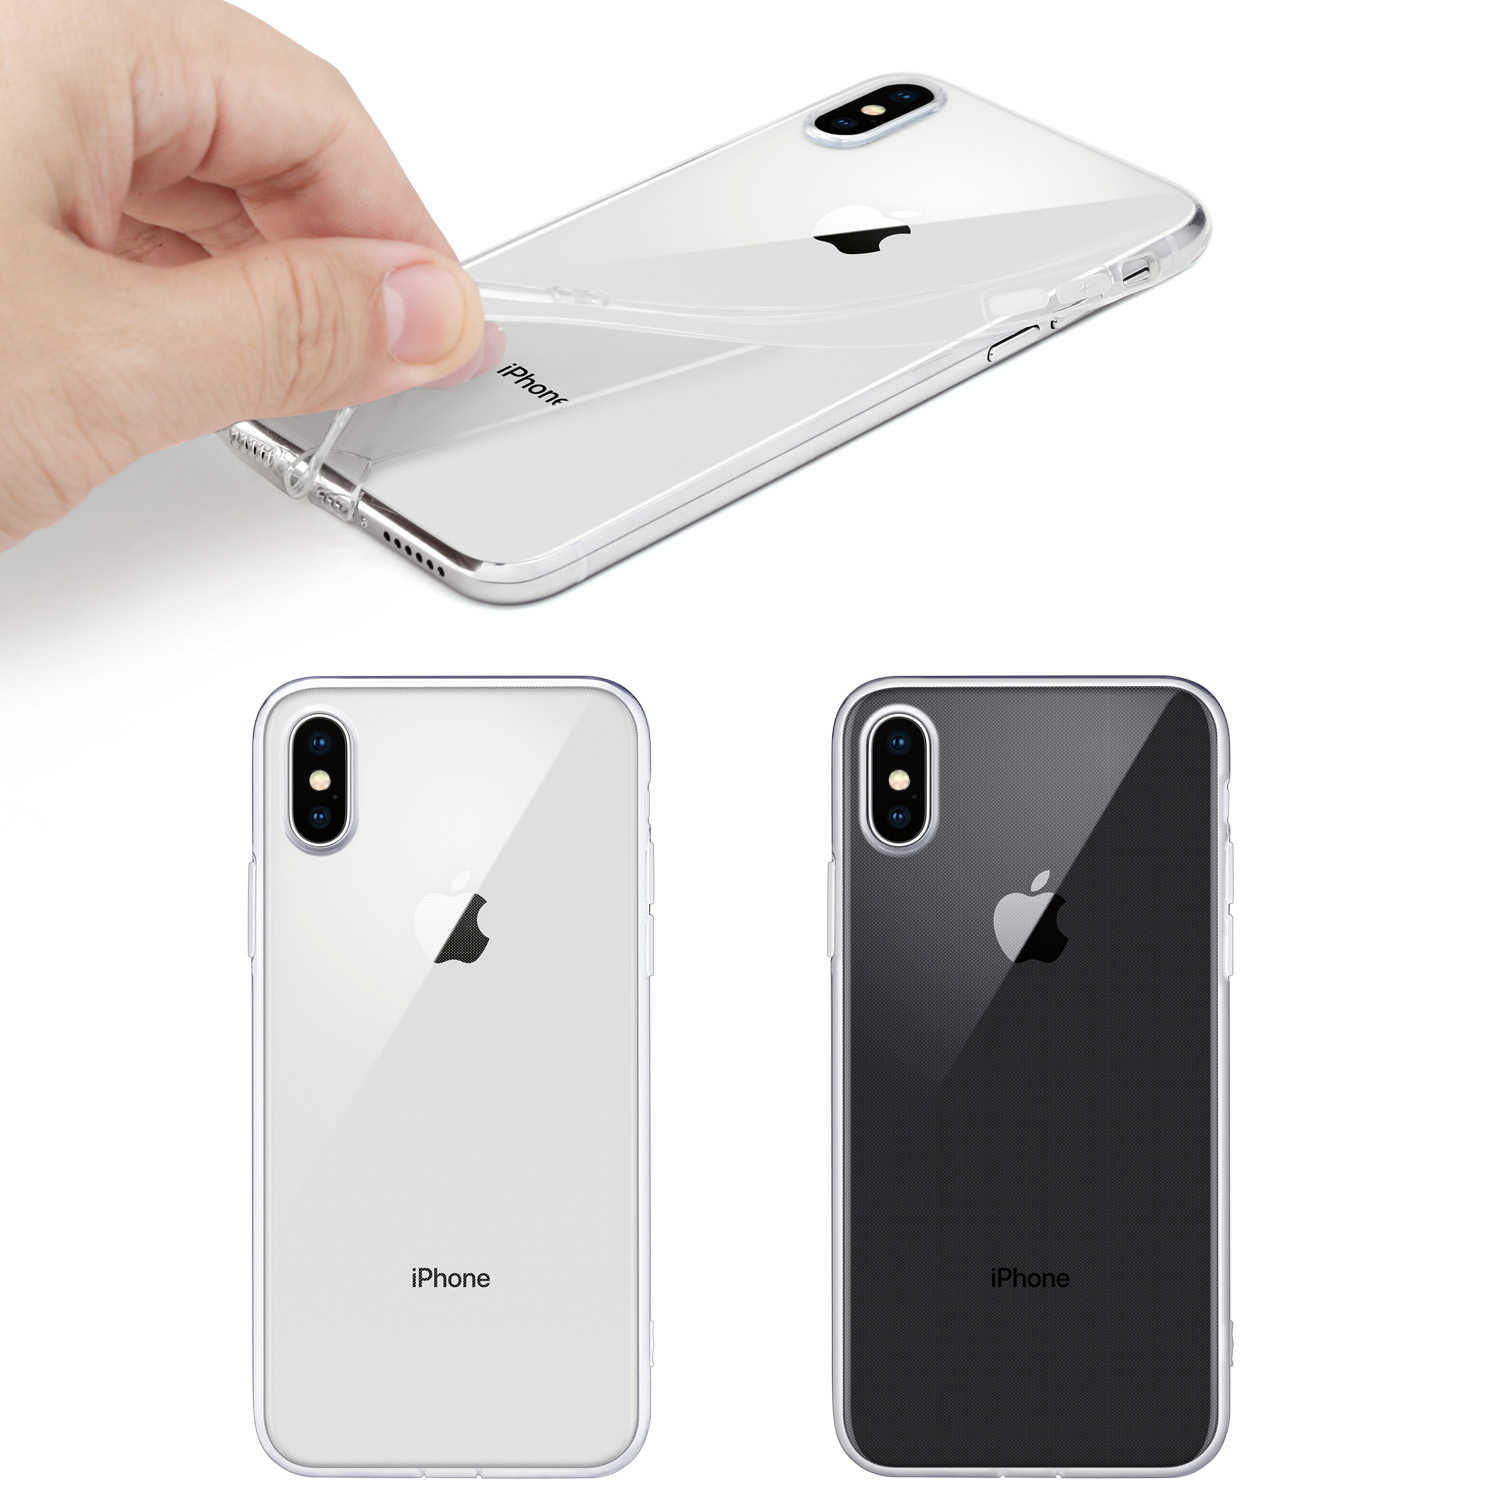 "HTB17hWKnr I8KJjy1Xaq6zsxpXat For iPhone X Case, WEFOR Slim Clear Soft TPU Cover Support Wireless Charging for Apple 5.8"" iPhone X /iPhone 10 (2017 Release)"